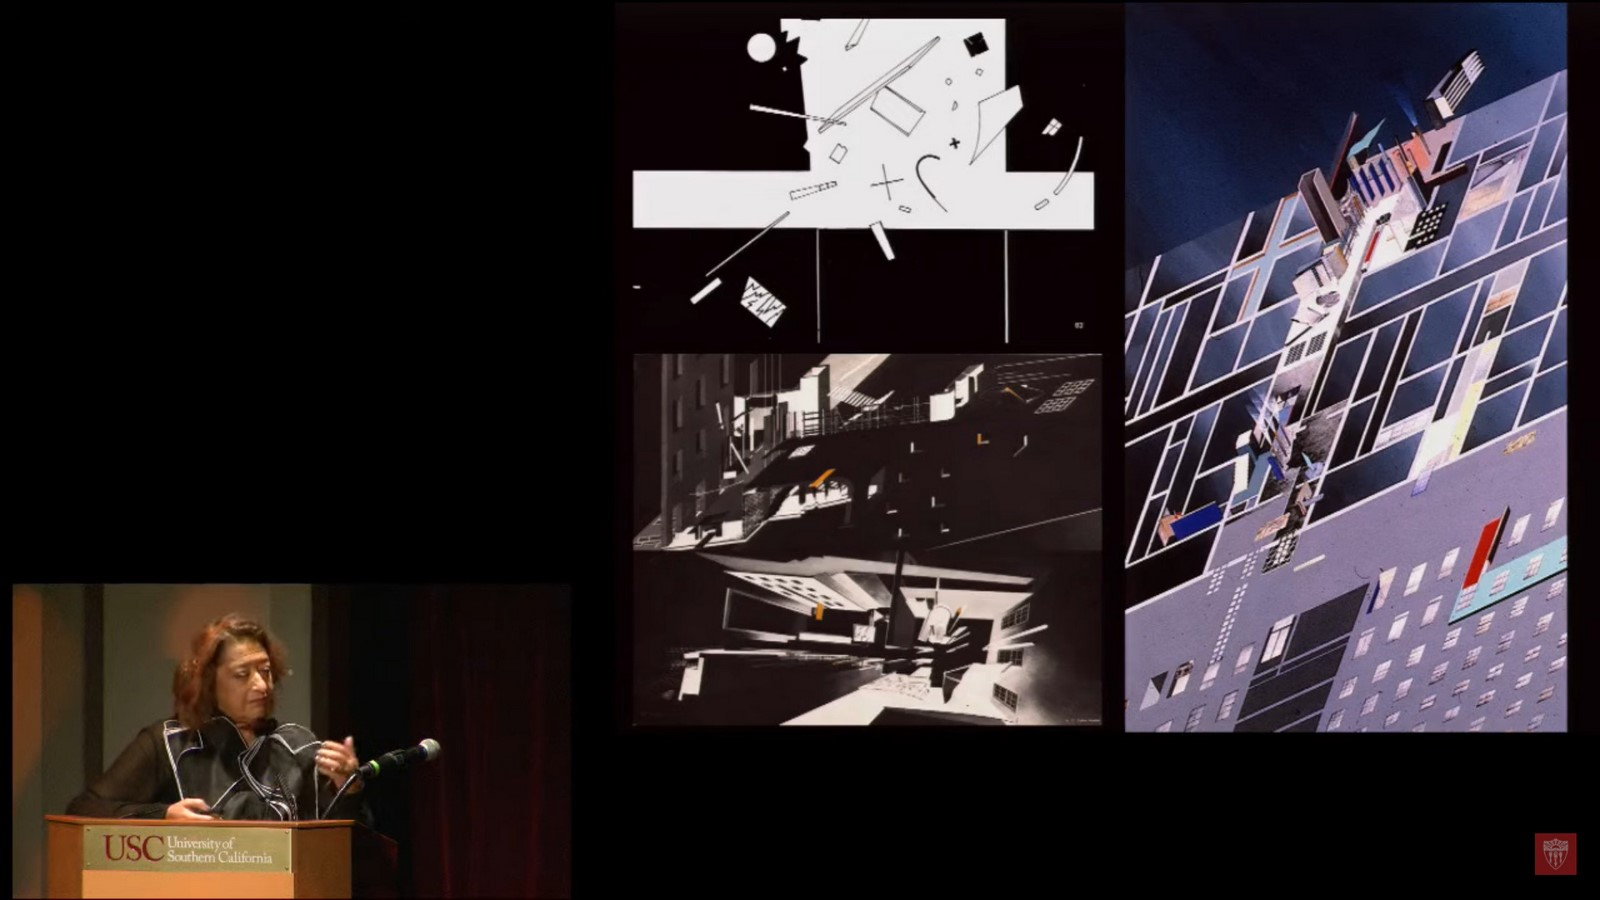 Interviews with Architects: Visions and Voices: An Evening with Zaha Hadid - Sheet3